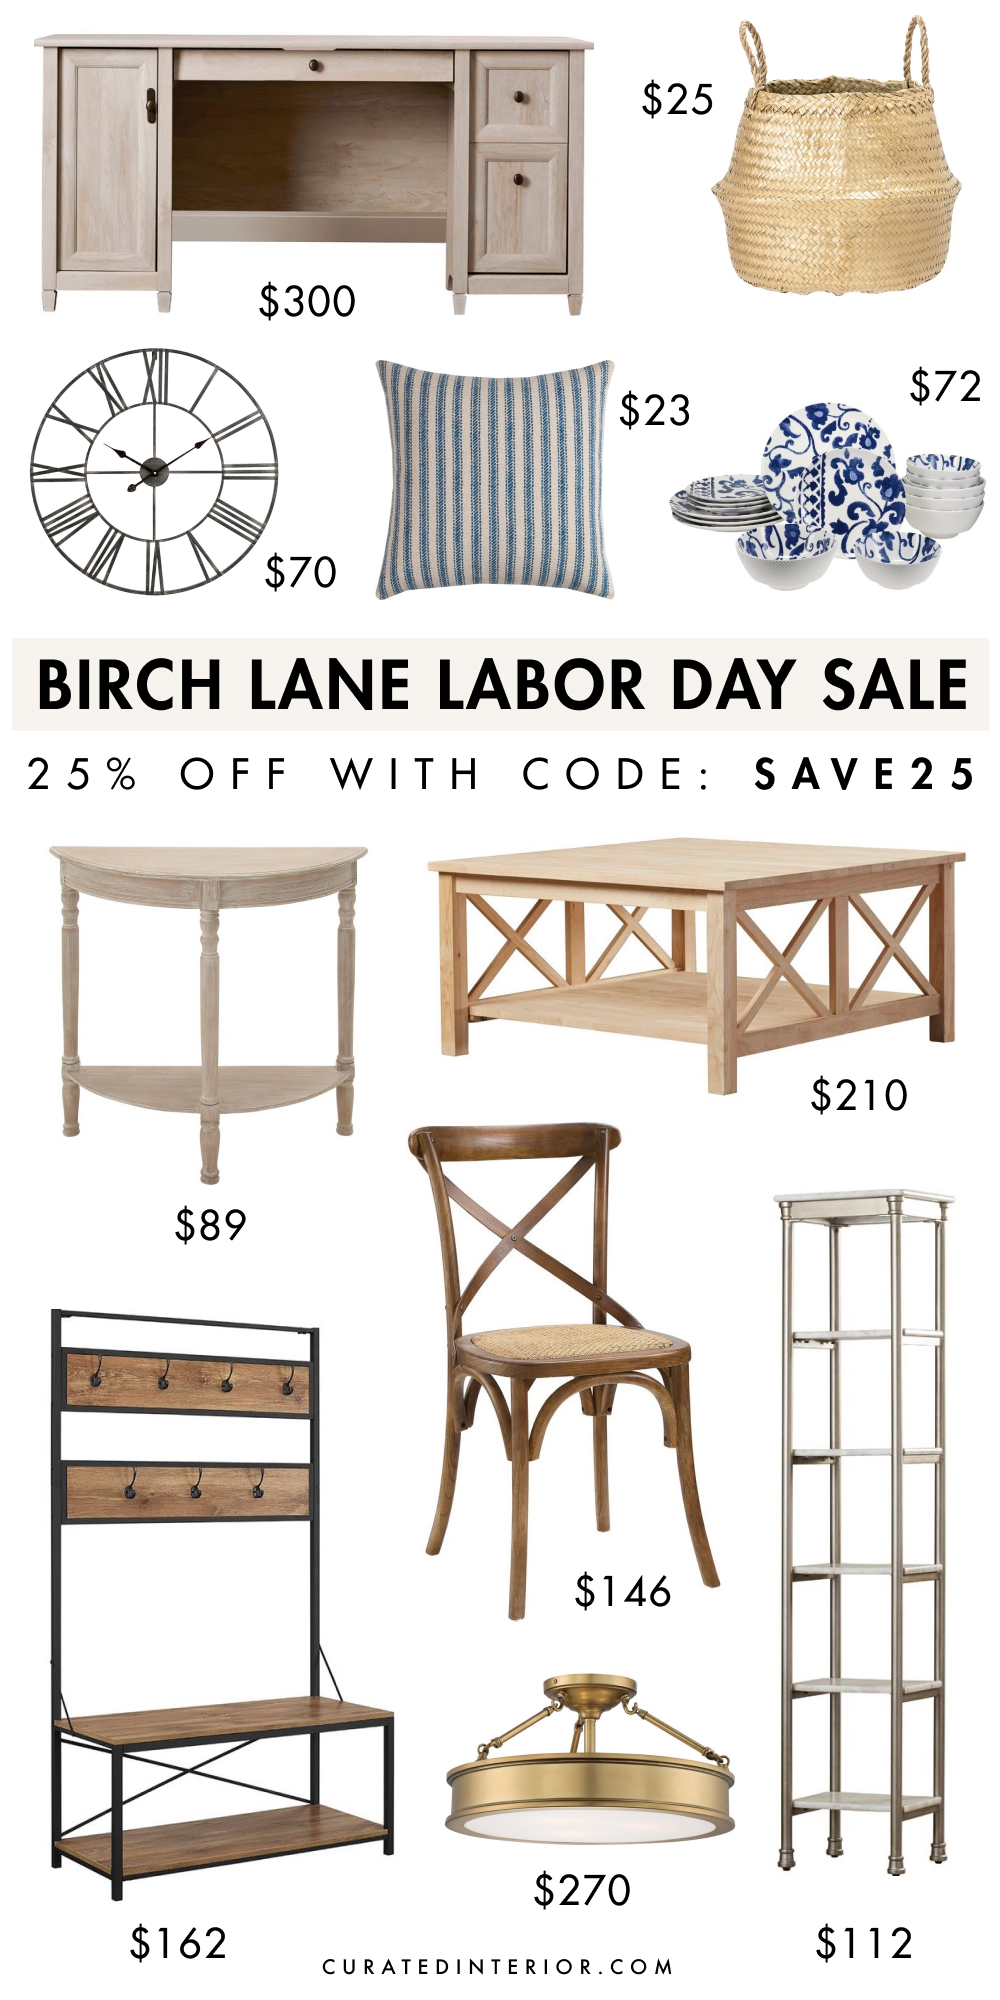 Birch Lane Labor Day Sale